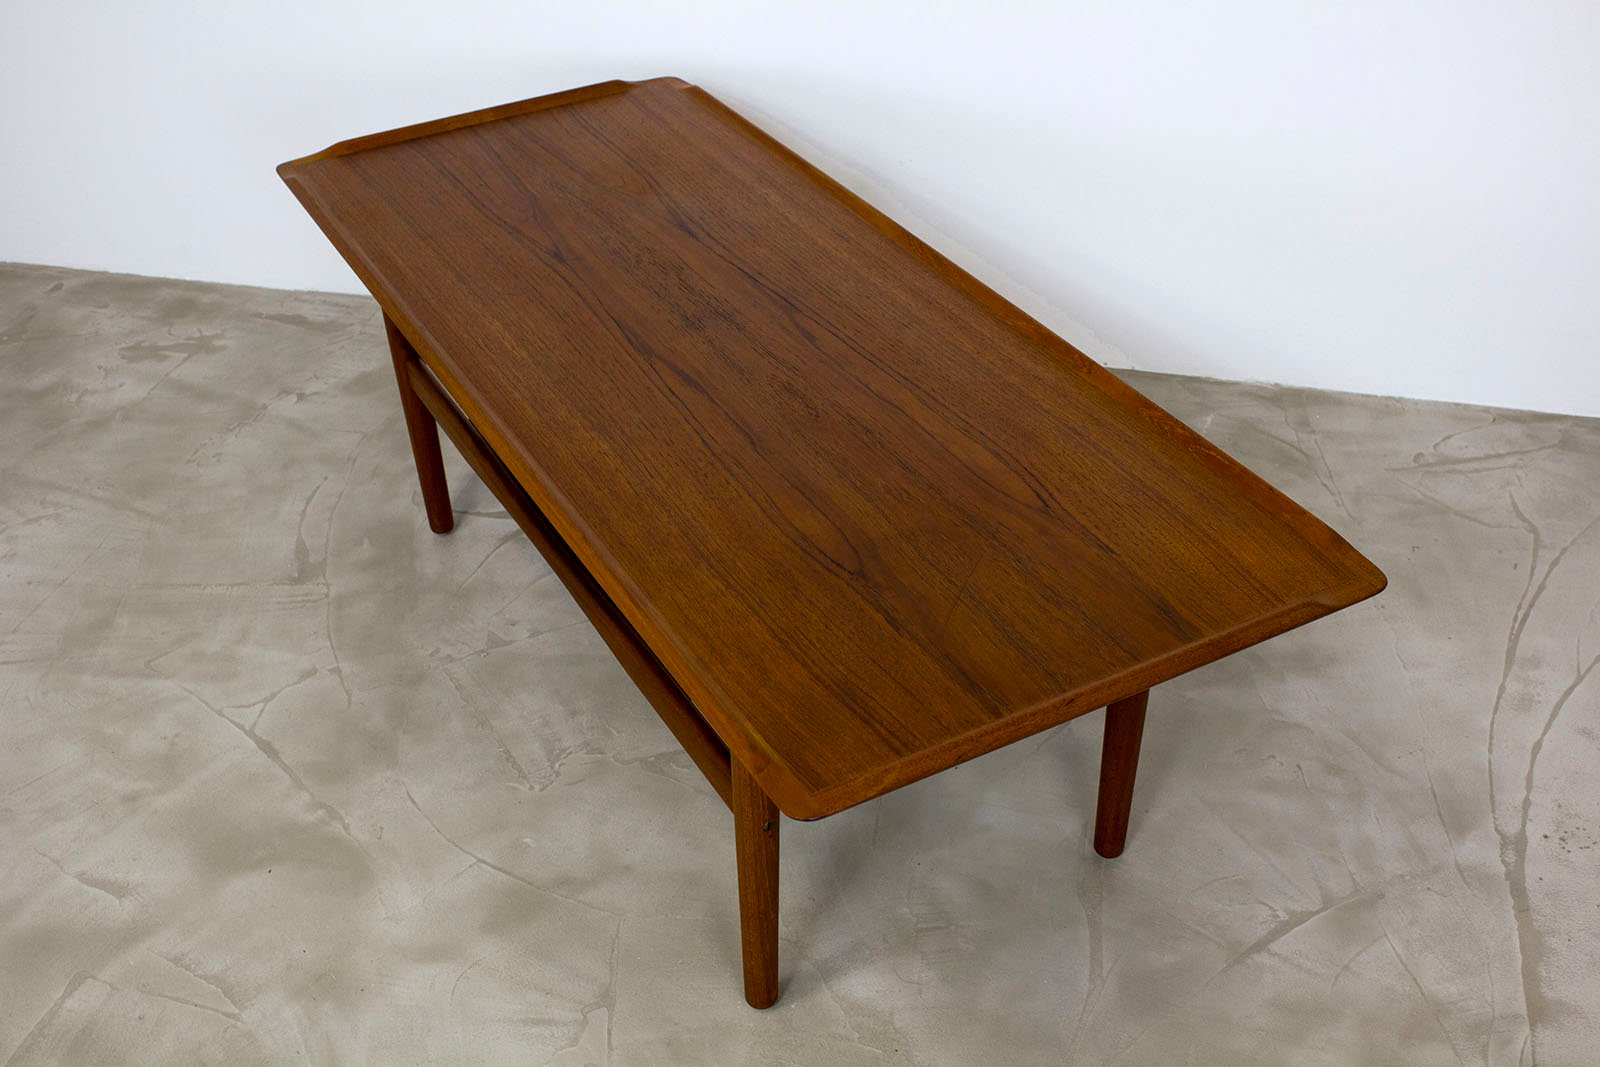 Danish Teak Coffee Table With Lipped Edges From Imha Modell 1960s For Sale At Pamono